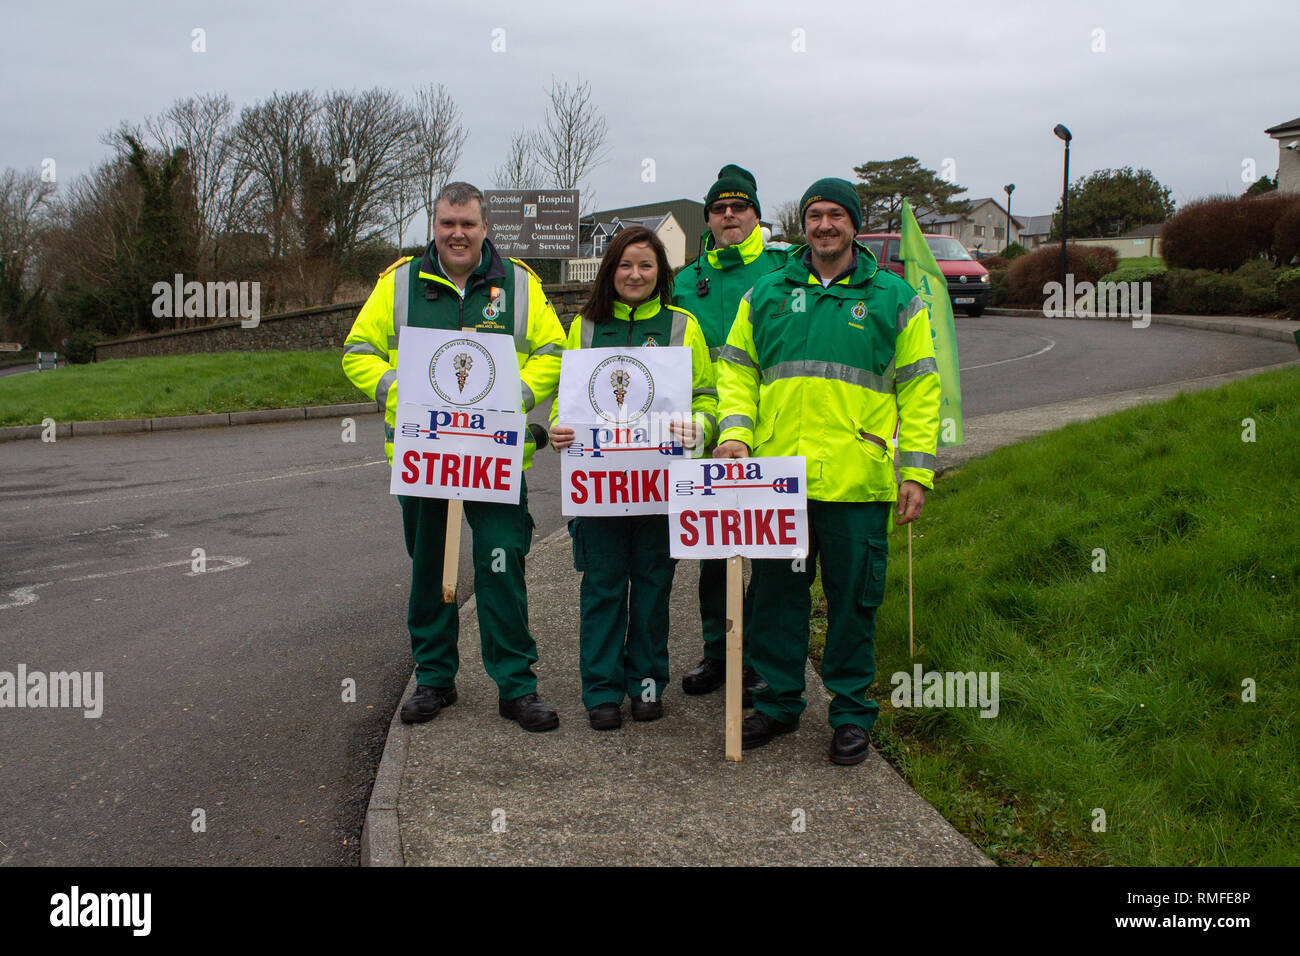 Skibbereen, West Cork, Ireland. 15th Feb 2019. PNA Strike picket line, Skibbereen, West Cork, Ireland, February 15th 2019 Ambulance personnel belonging to the Psychiatric Nurses Association (PNA) were out manning the picket line outside Skibbereen Community Hospital today as part of their nationwide industrial action. Credit: aphperspective/Alamy Live News - Stock Image